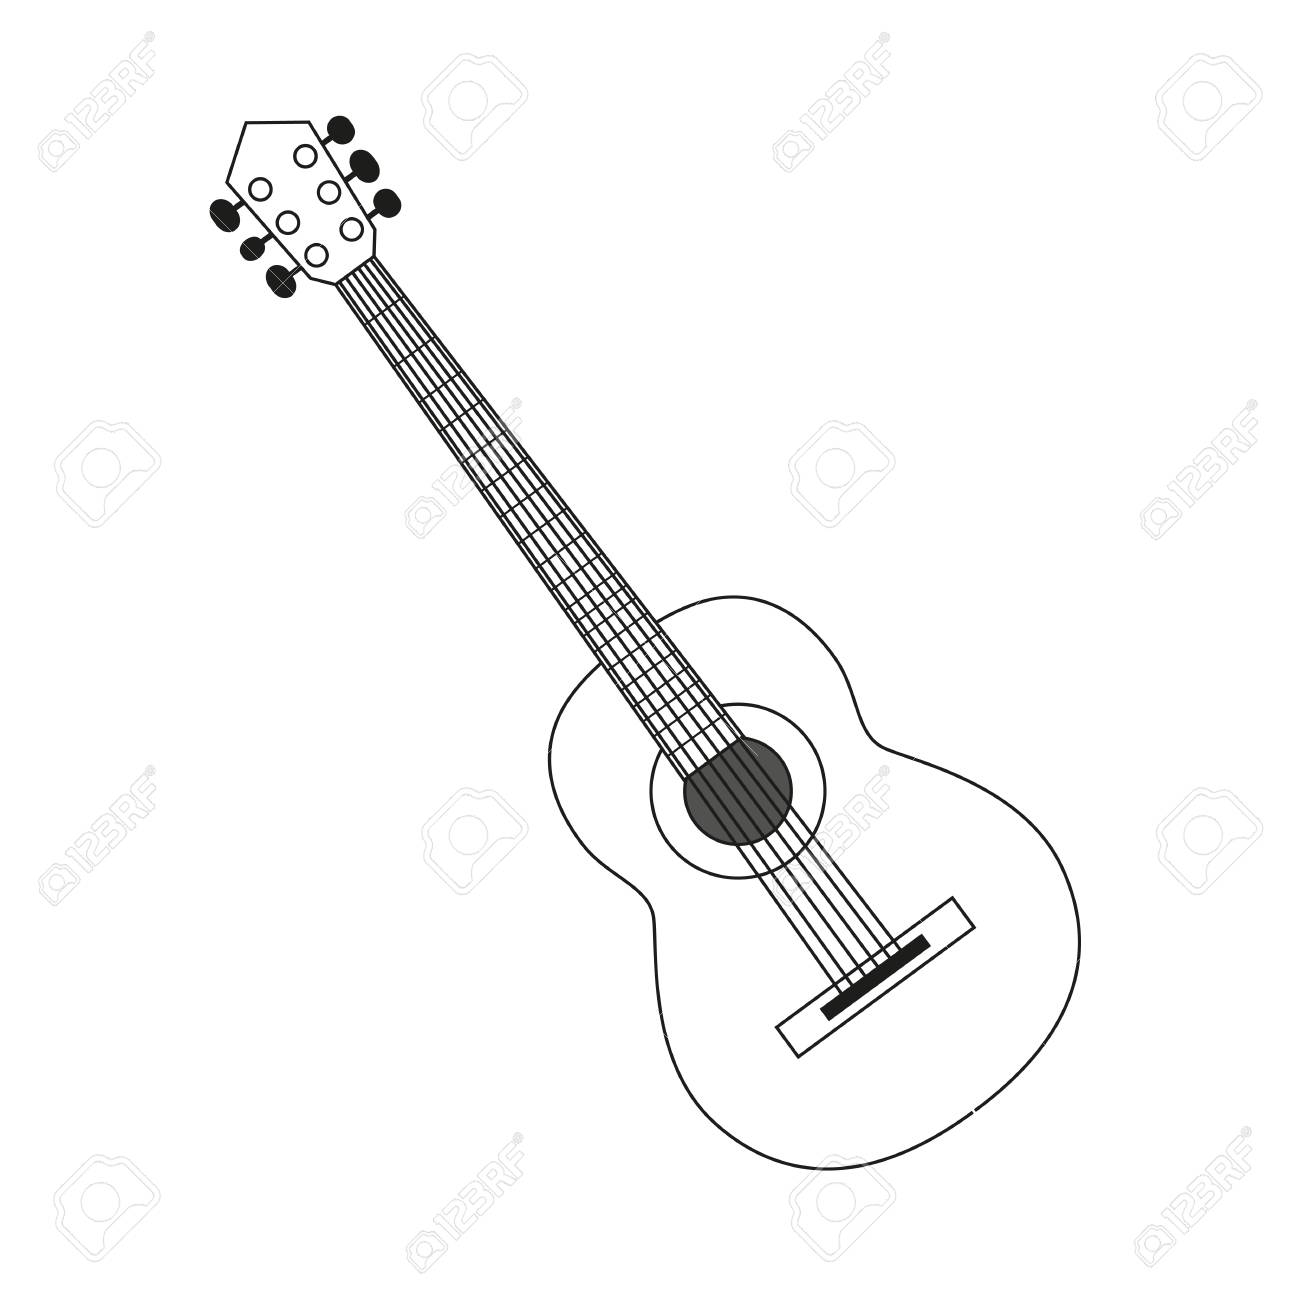 Illustration circuit outline of a guitar in black and white